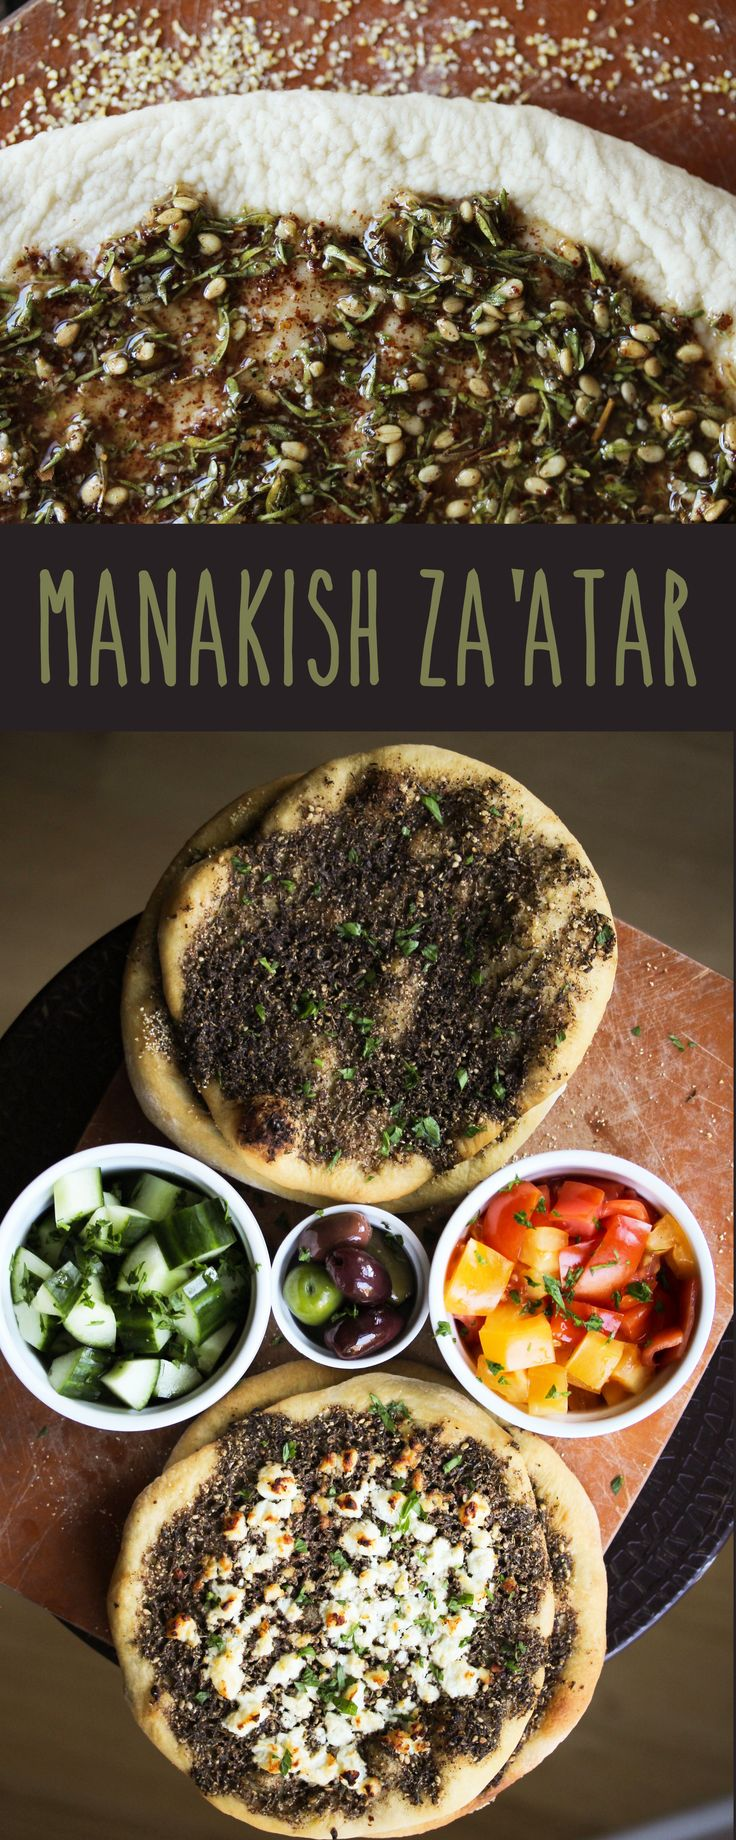 Manakish za'atar is a boldly flavored Middle Eastern pizza.